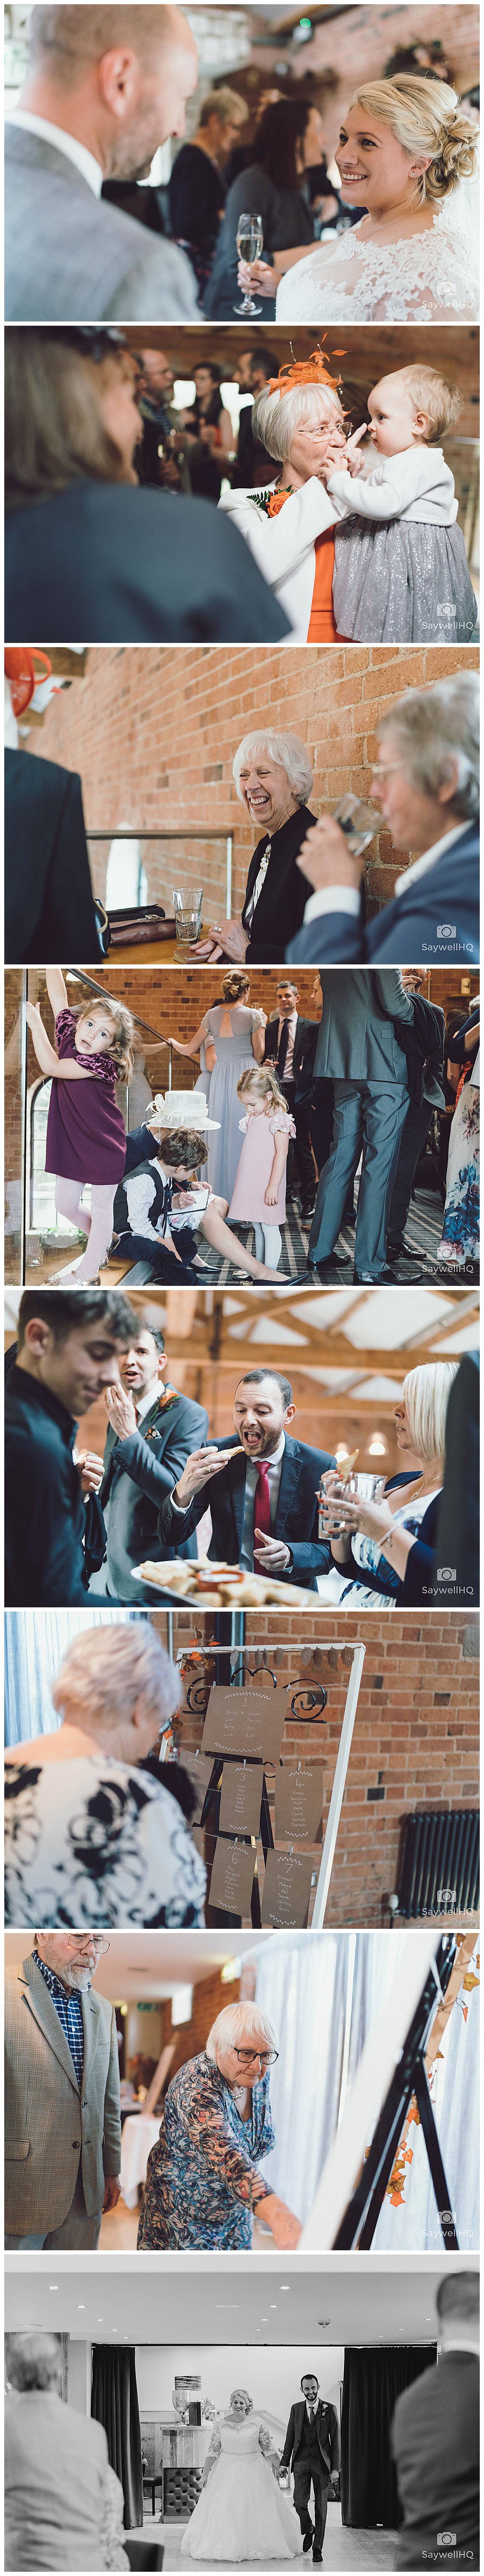 Wedding photography at Carriage Hall in Nottingham - bride and groom celebrate with guests at their wedding at carriage hall